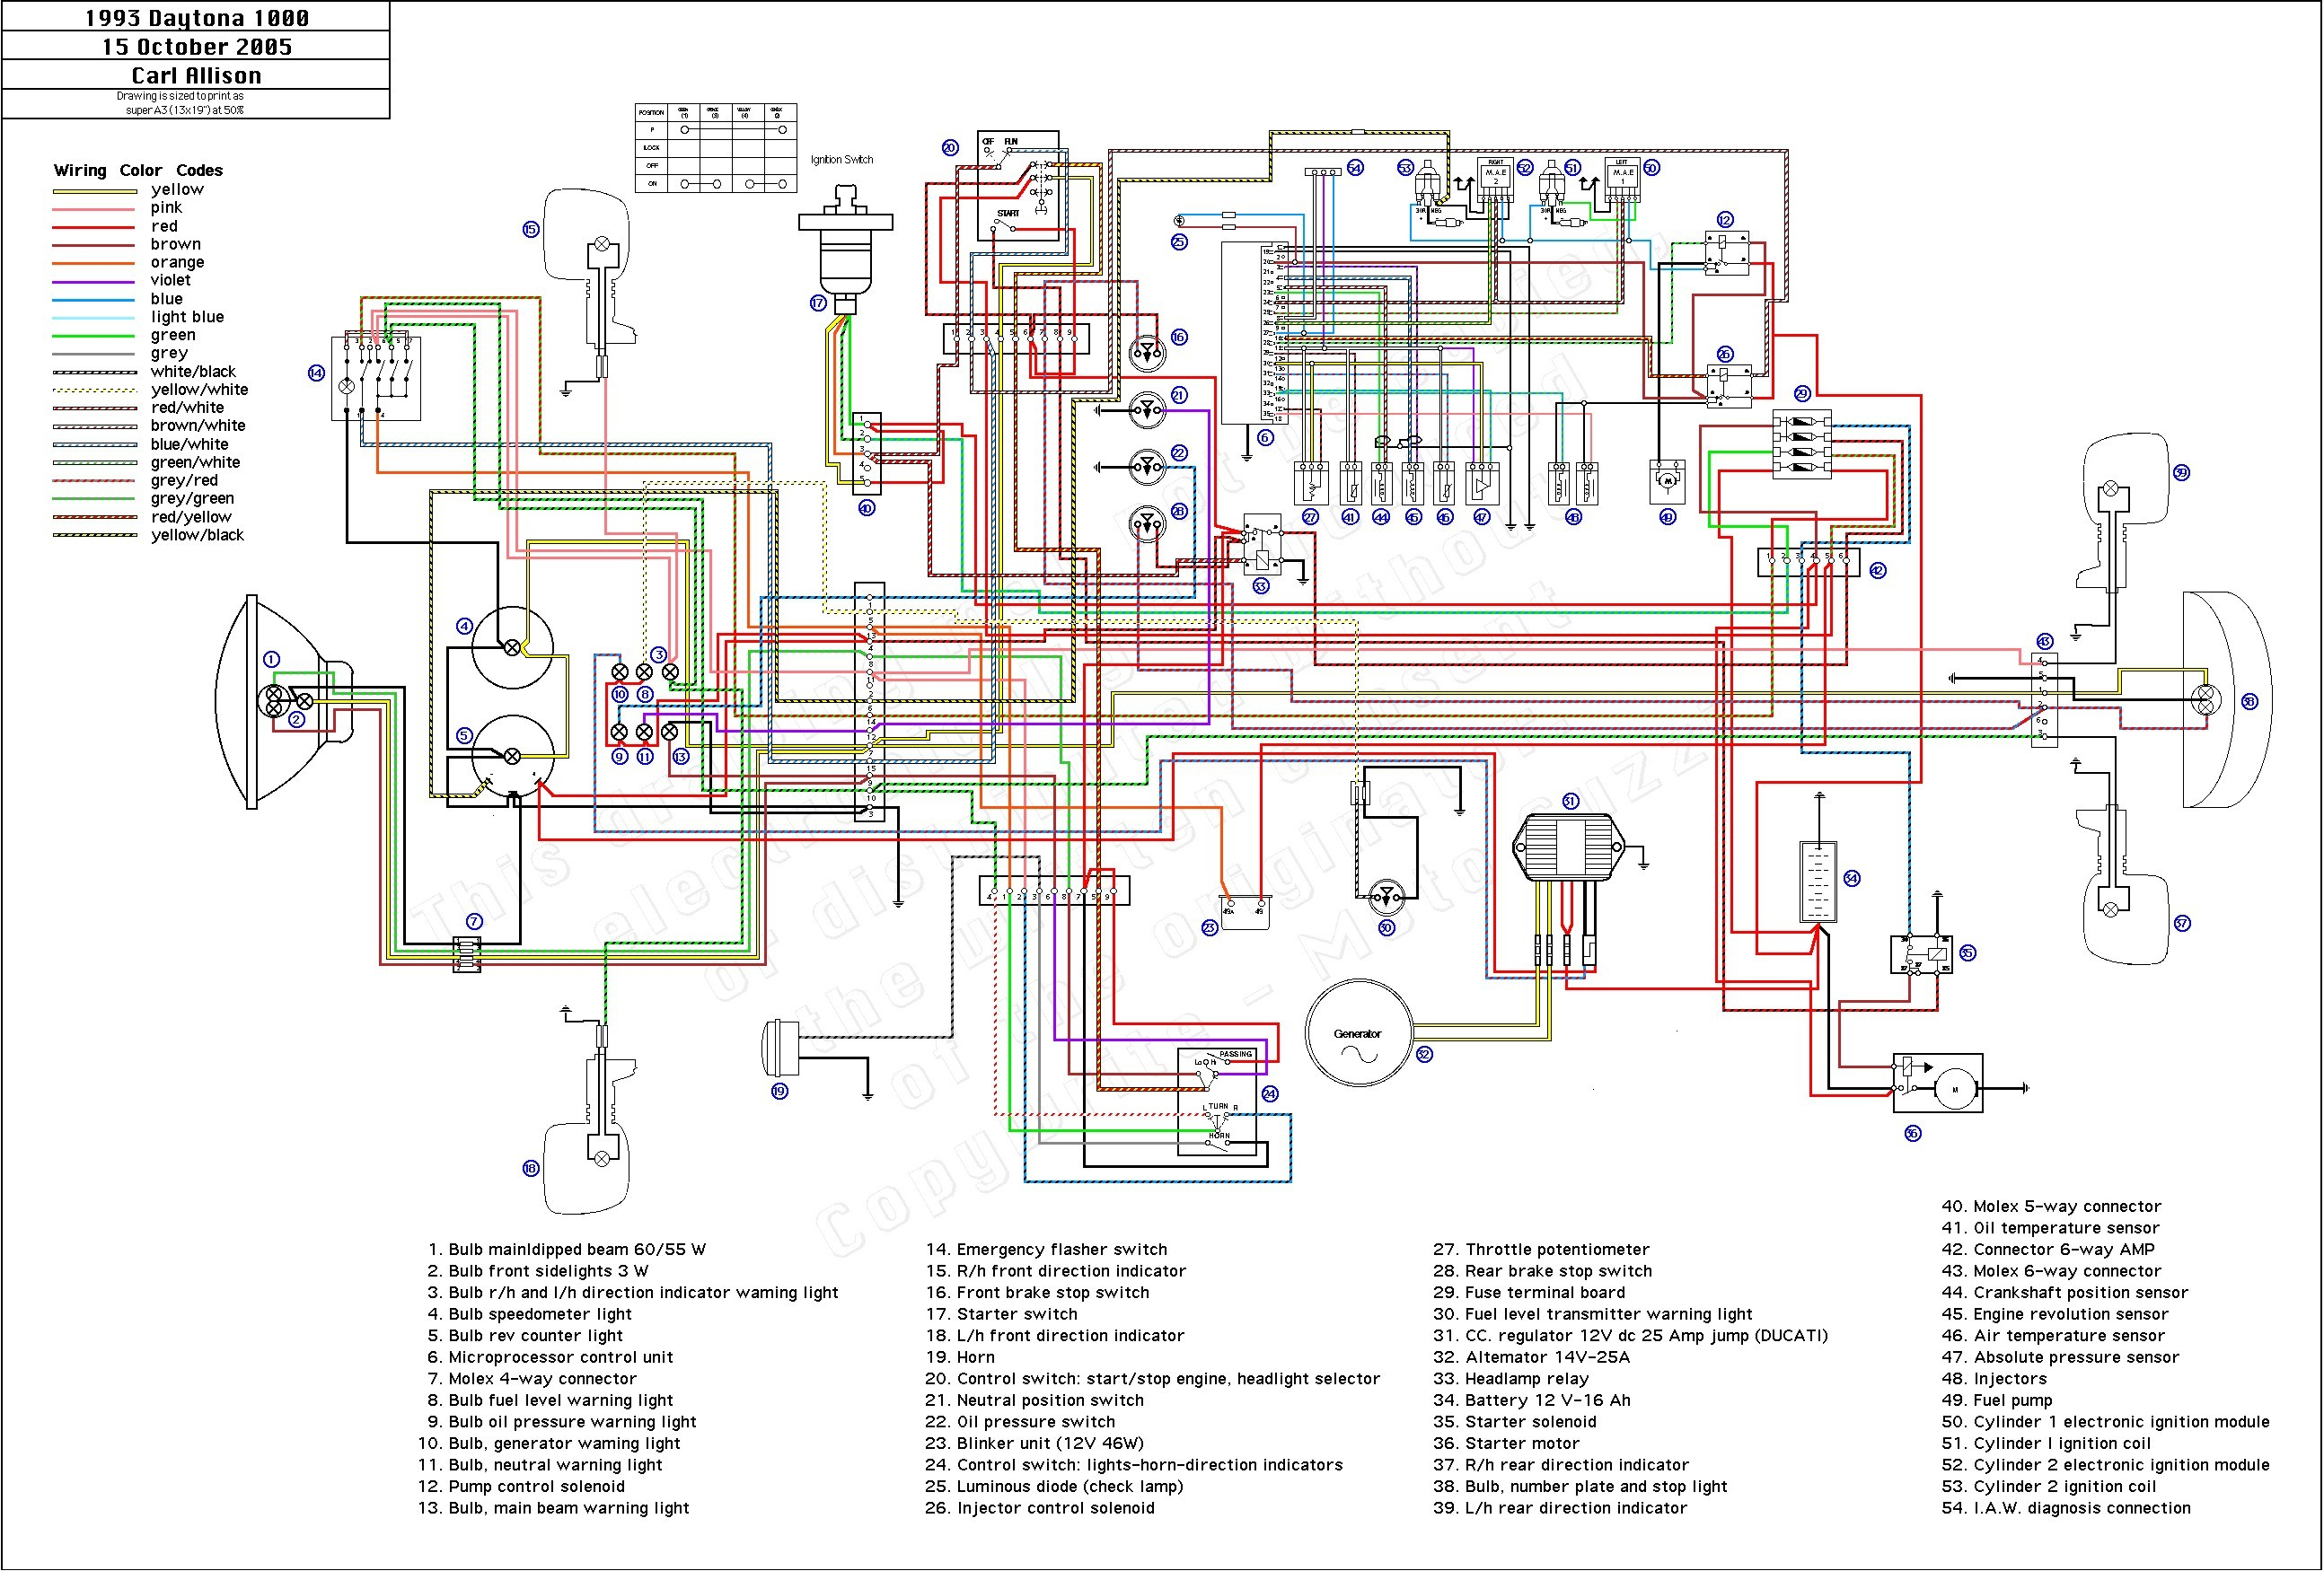 Yamaha Warrior Engine Diagram My Wiring Toyota Sequoia Starter Relay Moto Guzzi Refrence 350 Color At 2001